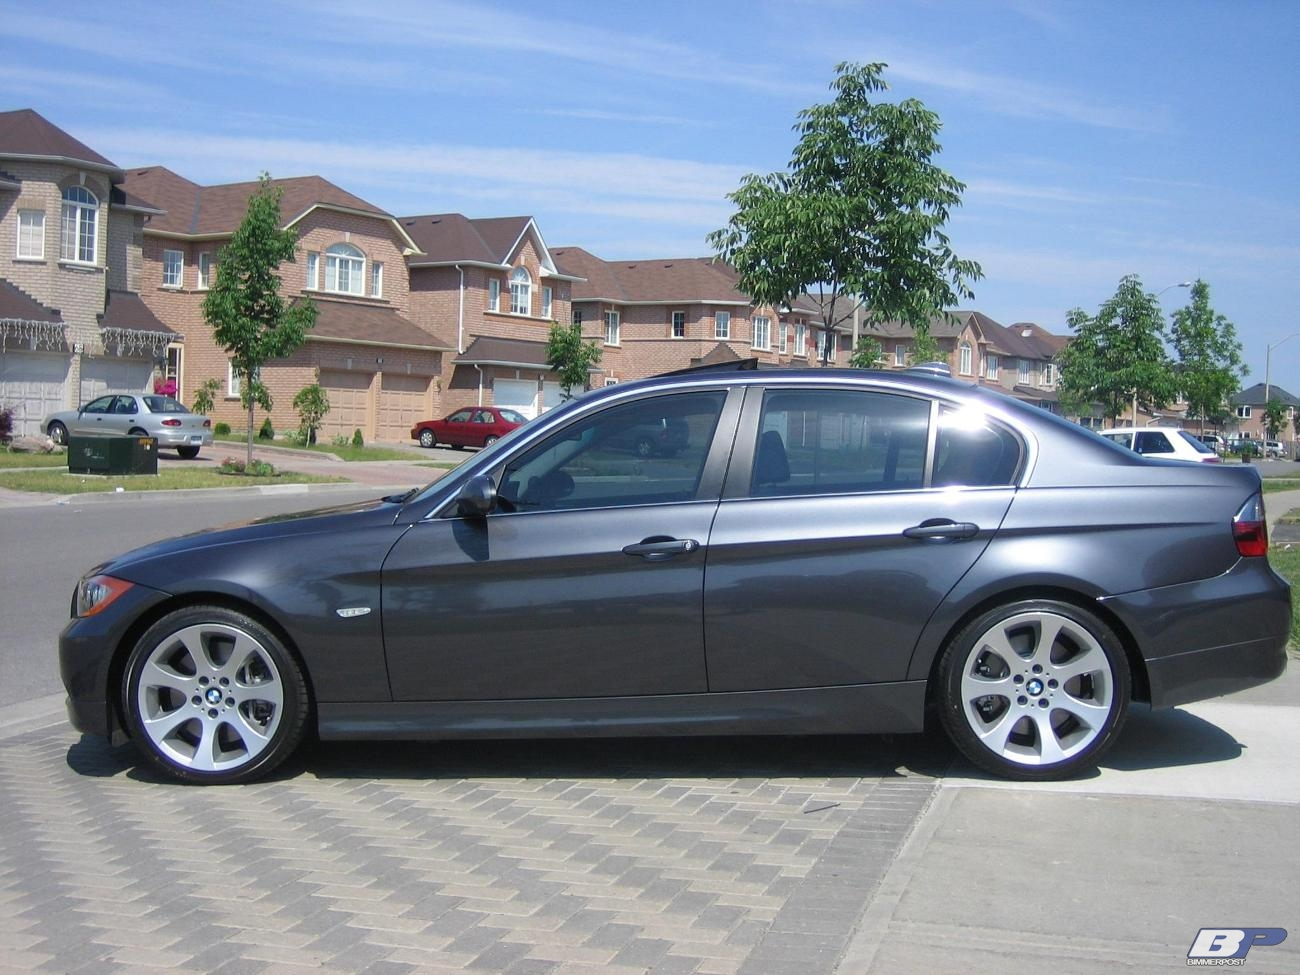 Ct335i S 2007 Bmw 335i Sedan Bimmerpost Garage